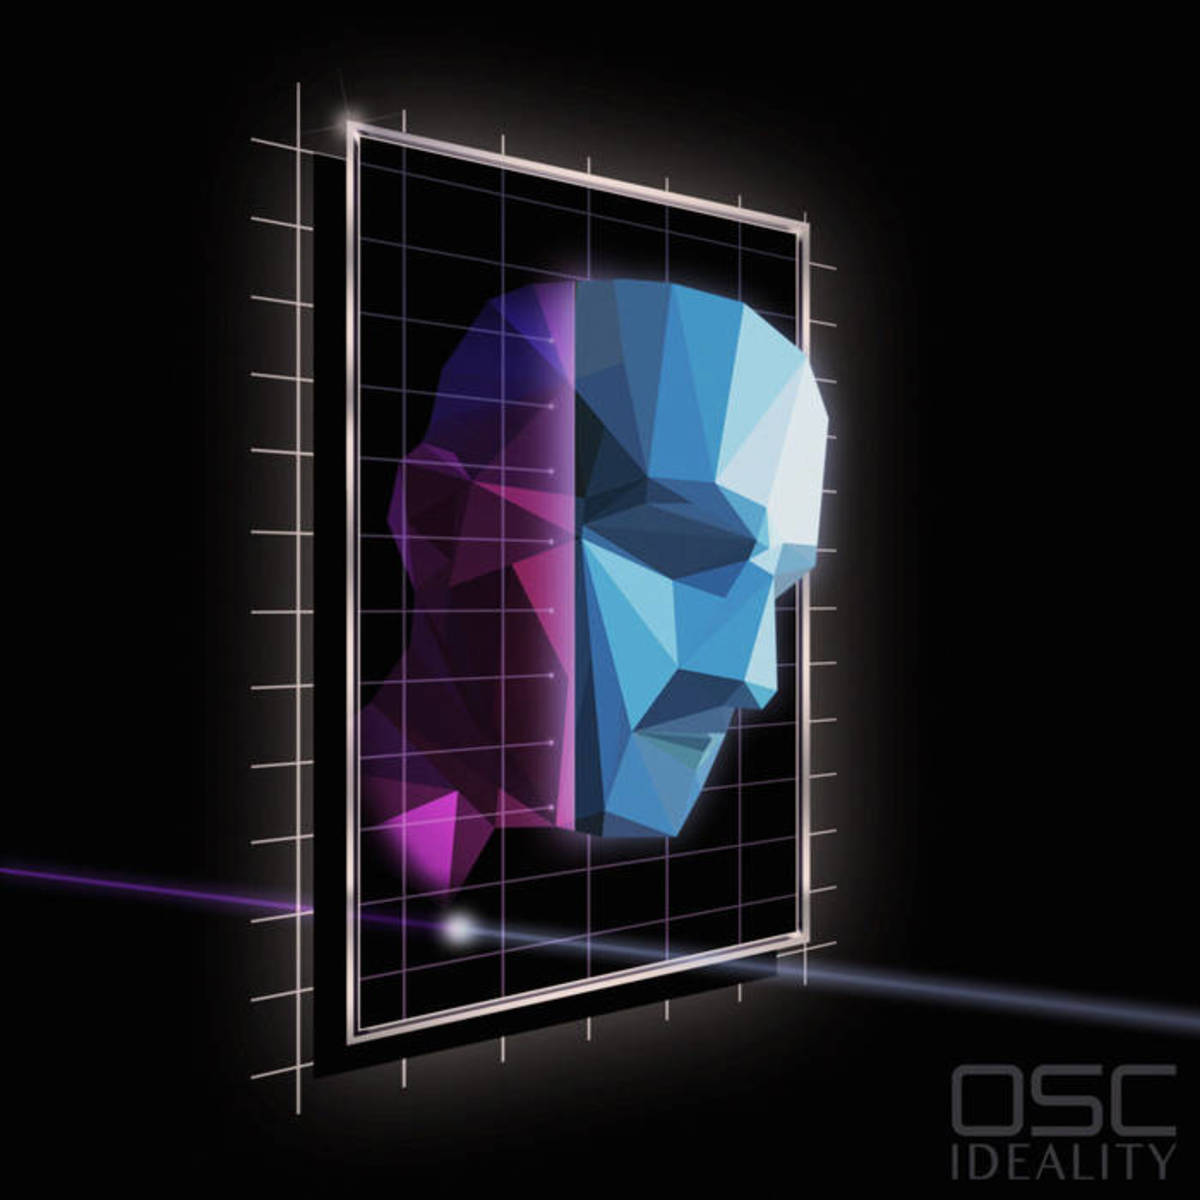 """Synth Album Review: OSC, """"Ideality"""""""